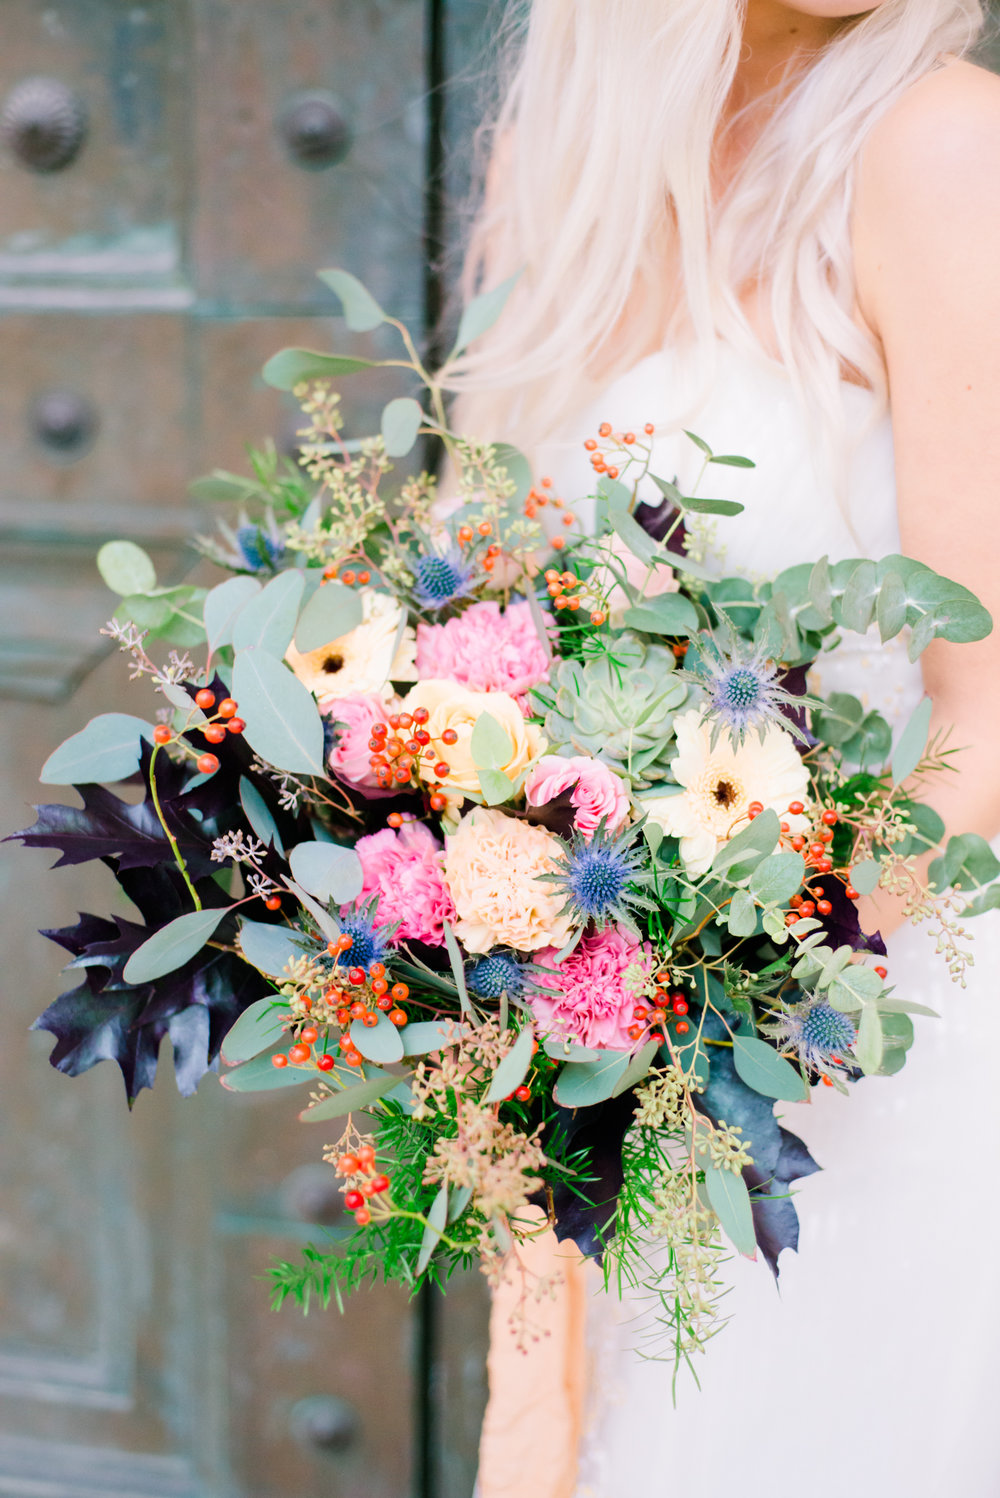 Elegant Organic Fall Swedish Bridal Wedding Styled Shoot - Erika Alvarenga Photography-53.jpg